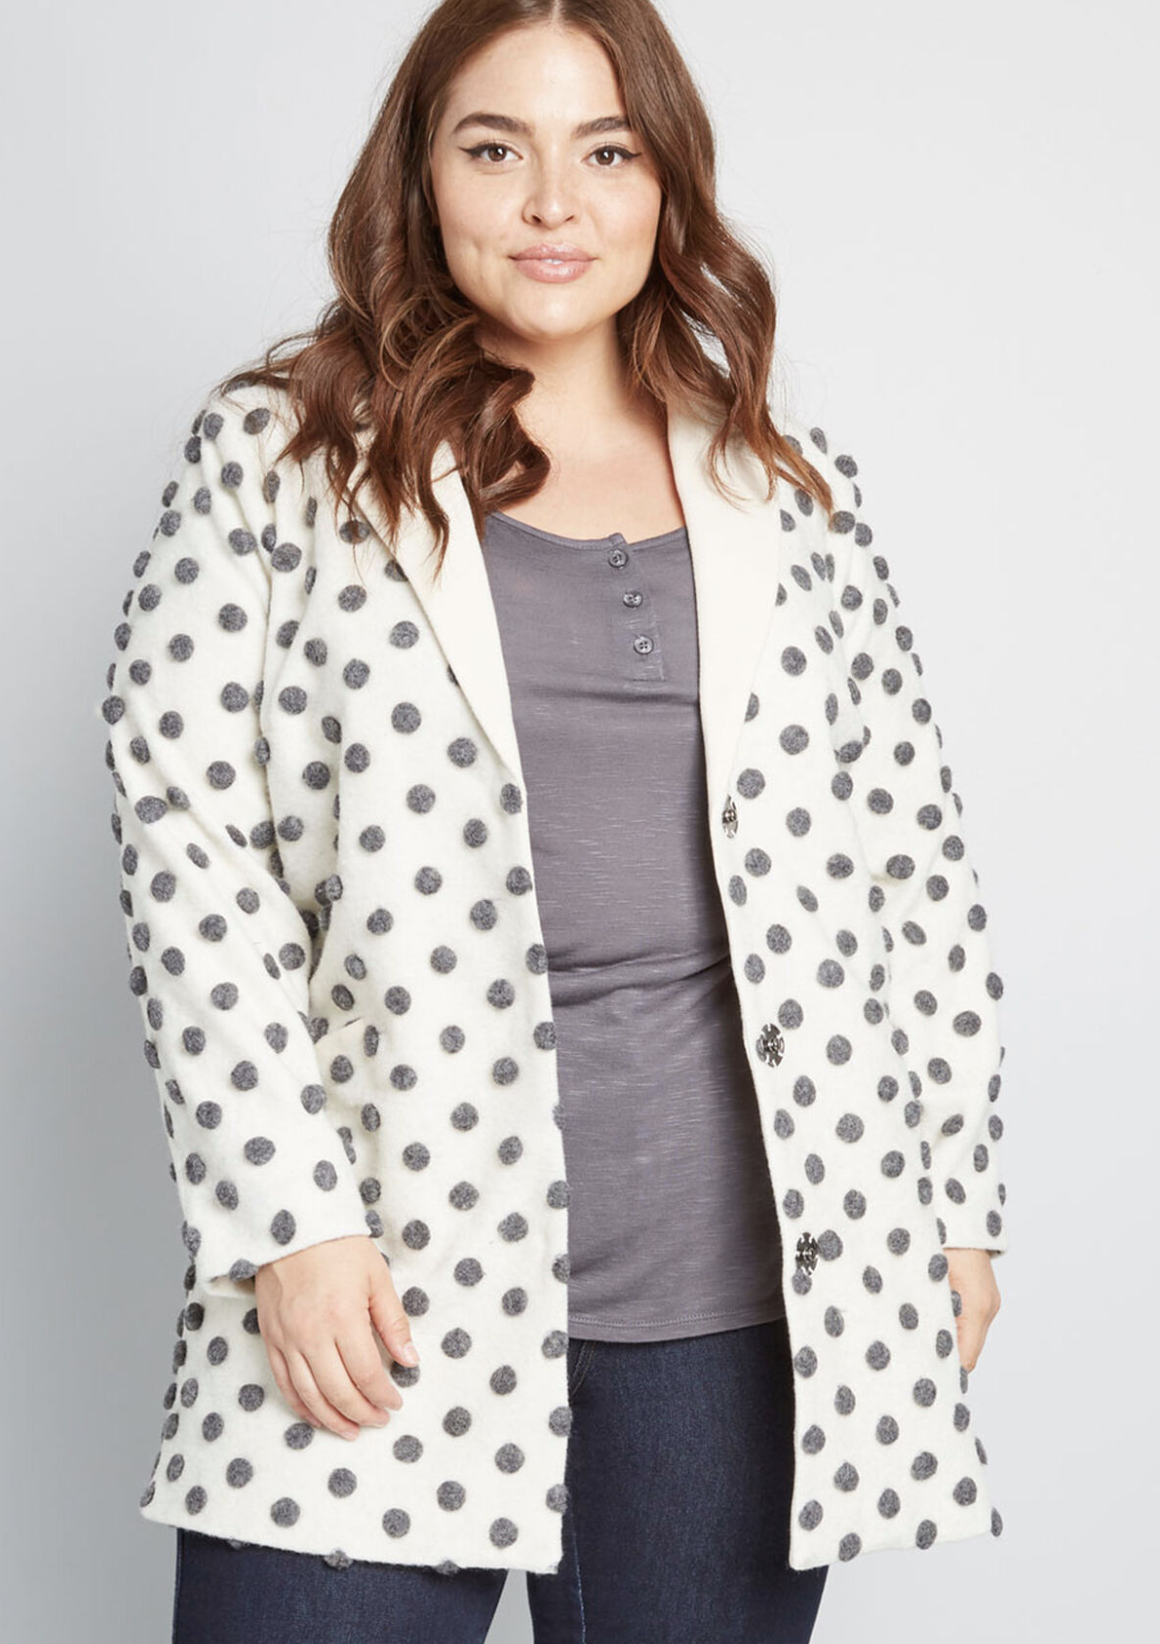 Model in ivory wool coat with gray pom-pom-esque pola dots